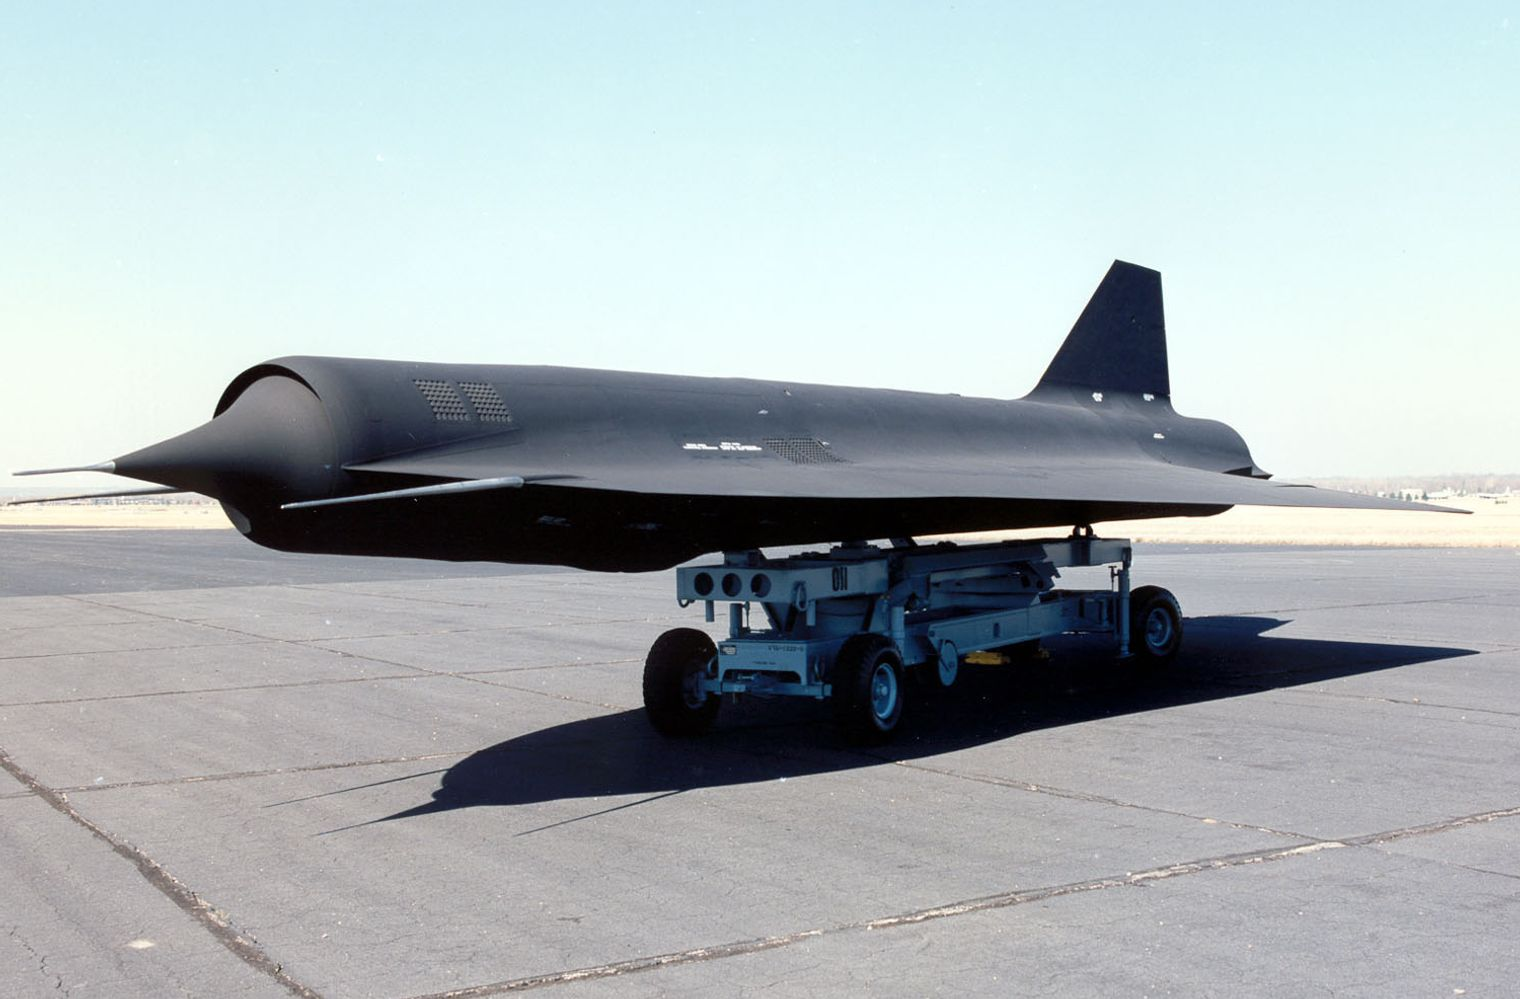 Russia Got Its Hands on This 'Mini SR-71' Mach 3 Spy Drone (To Steal Its Secrets)